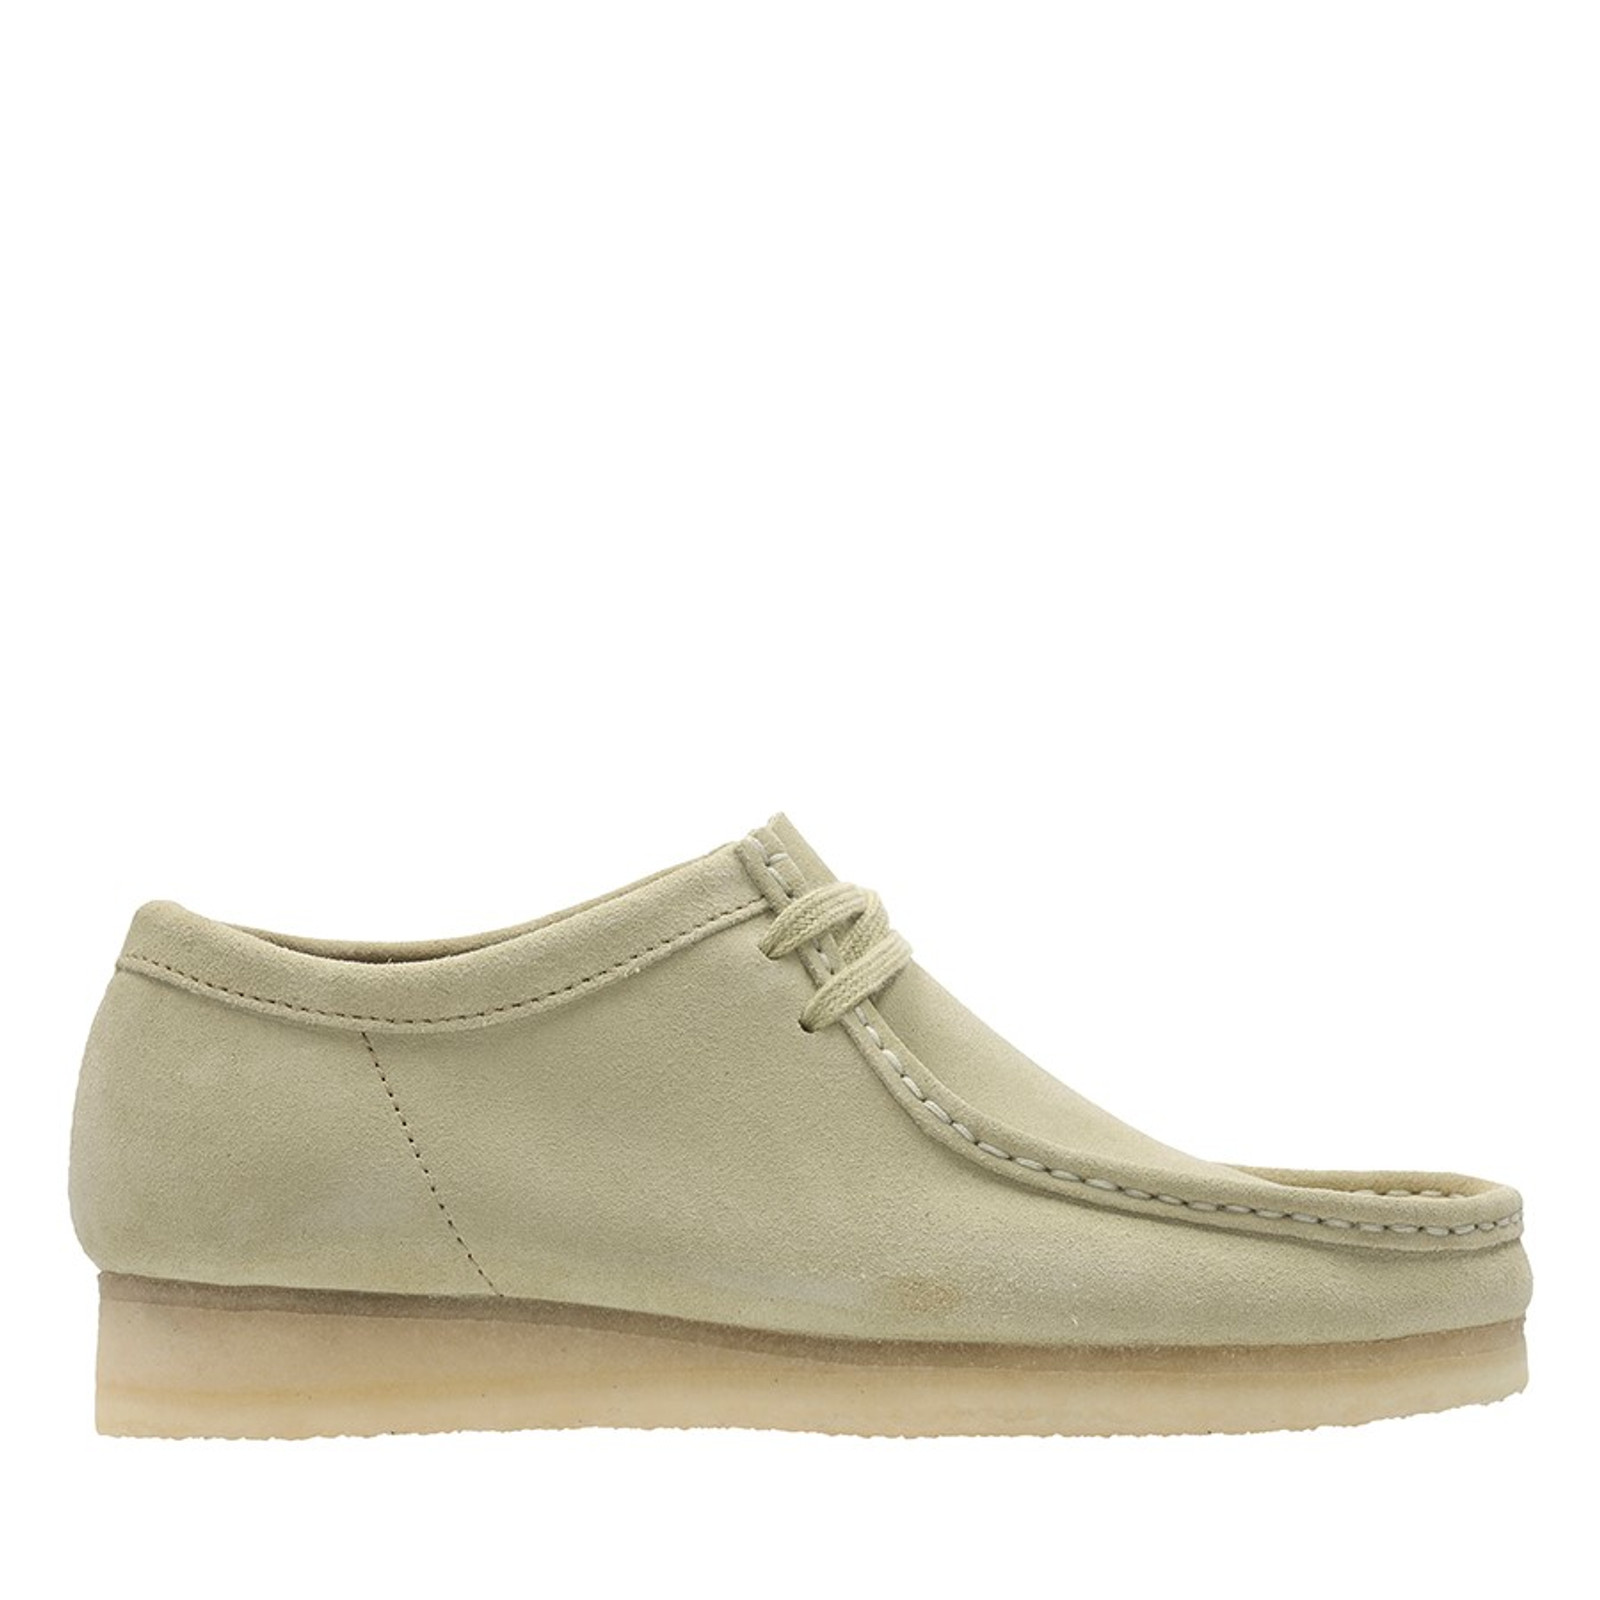 Clarks Mens WALLABEE (M) Maple Suede